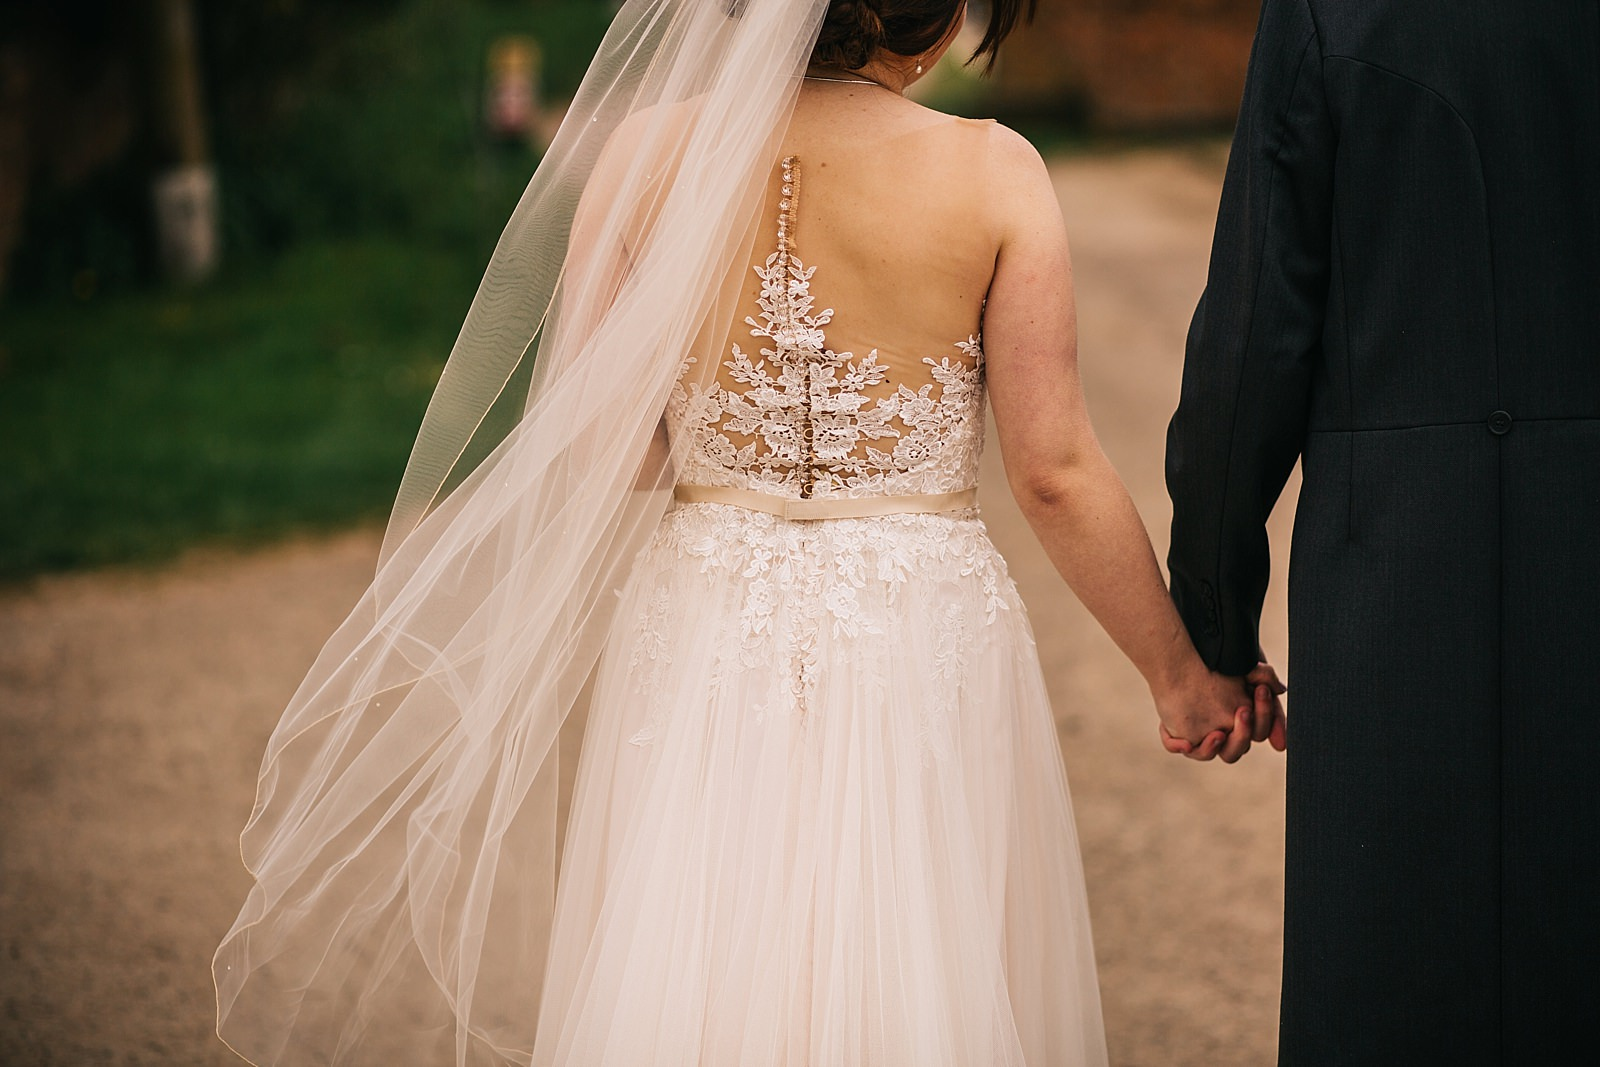 photo of newly wed couple holding hands and walking away